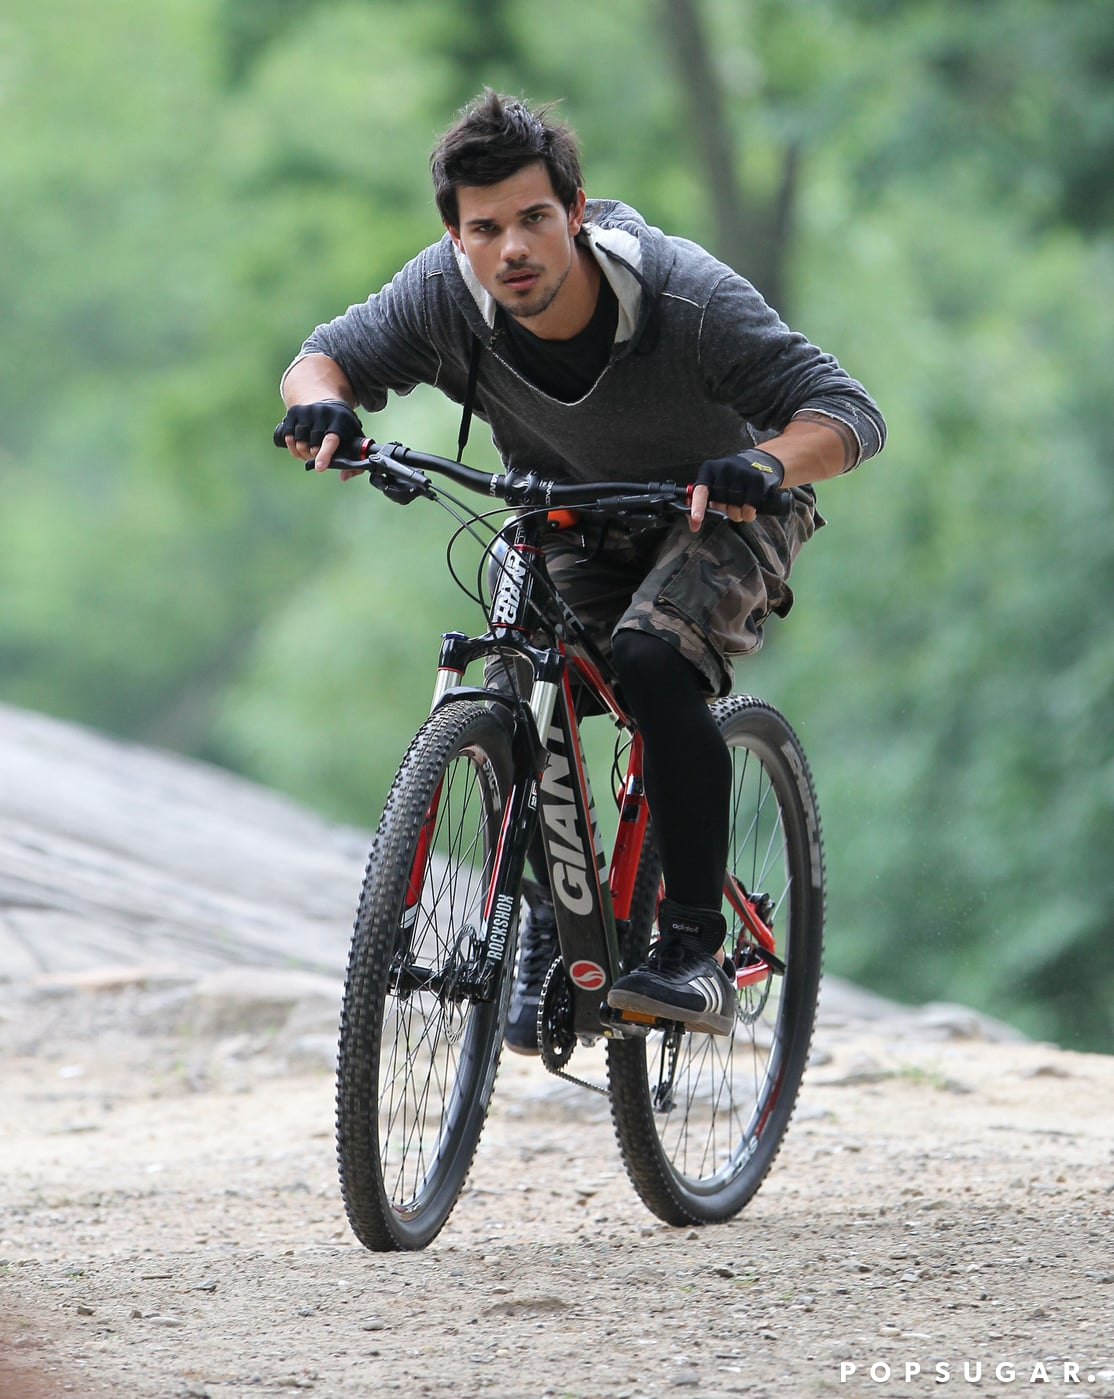 Taylor Lautner pedaled on a dirt path while filming Tracers in NYC this past June.